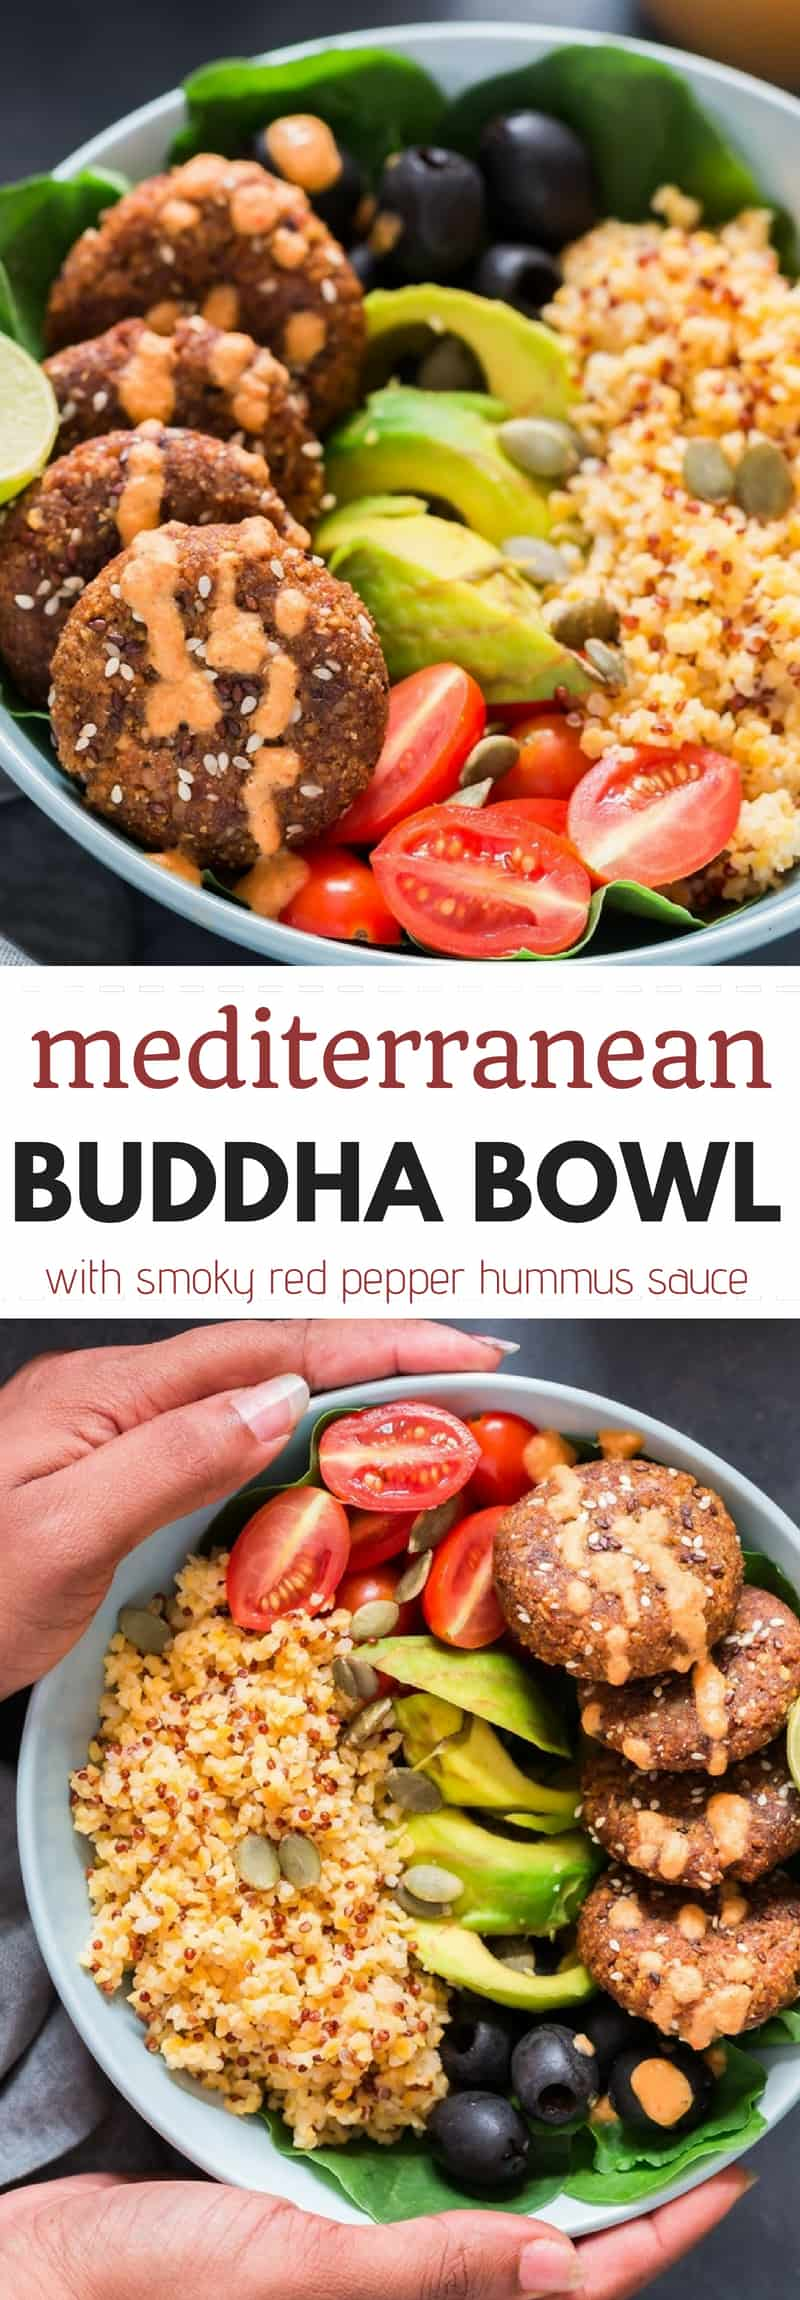 2 blue bowls having falafel, quinoa, vegetables all arranged for Mediterranean Vegan Buddha Bowl with red pepper hummus dressing with text overlay